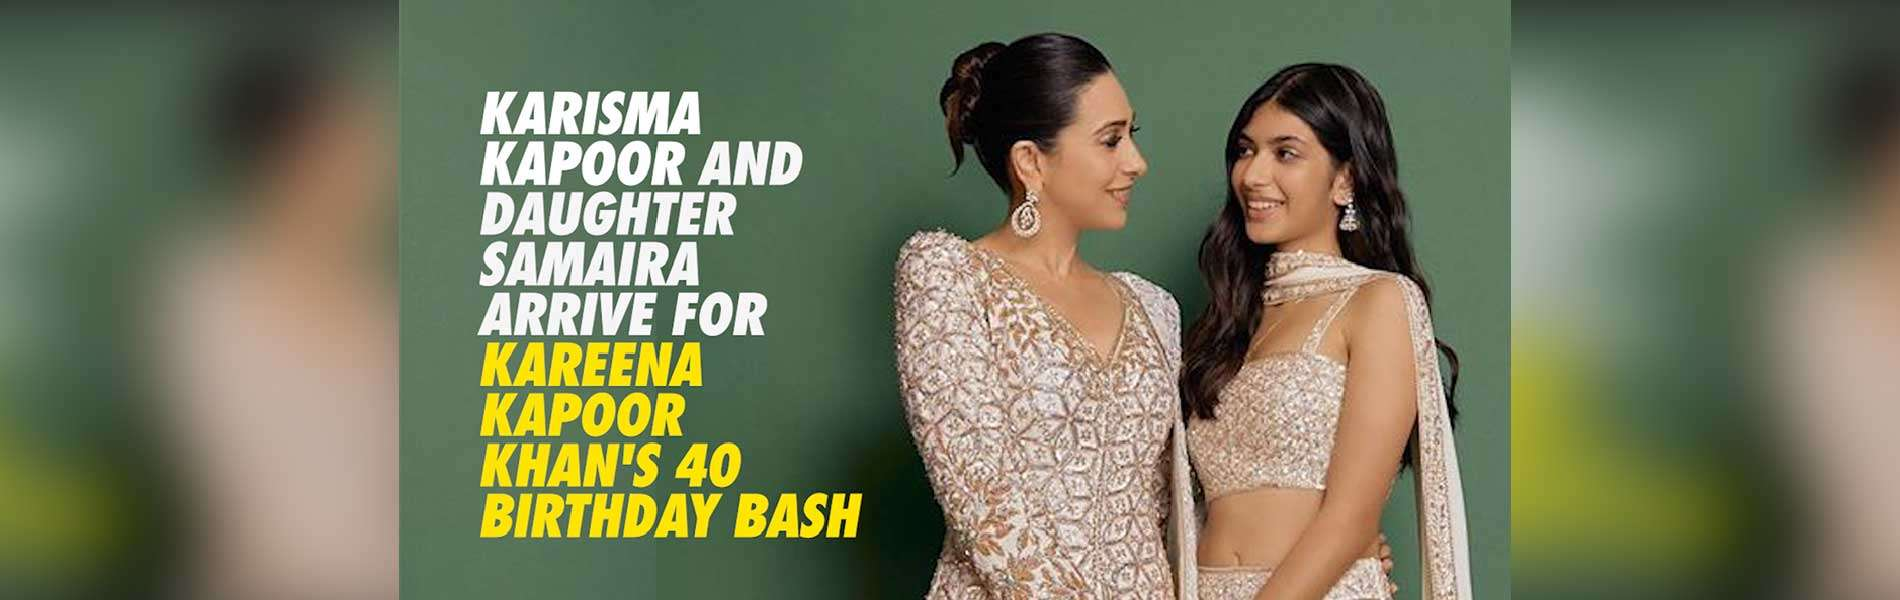 karisma-kapoor-and-daughter-samaira-arrive-for-kareena-kapoor-khans-40-birthday-bash